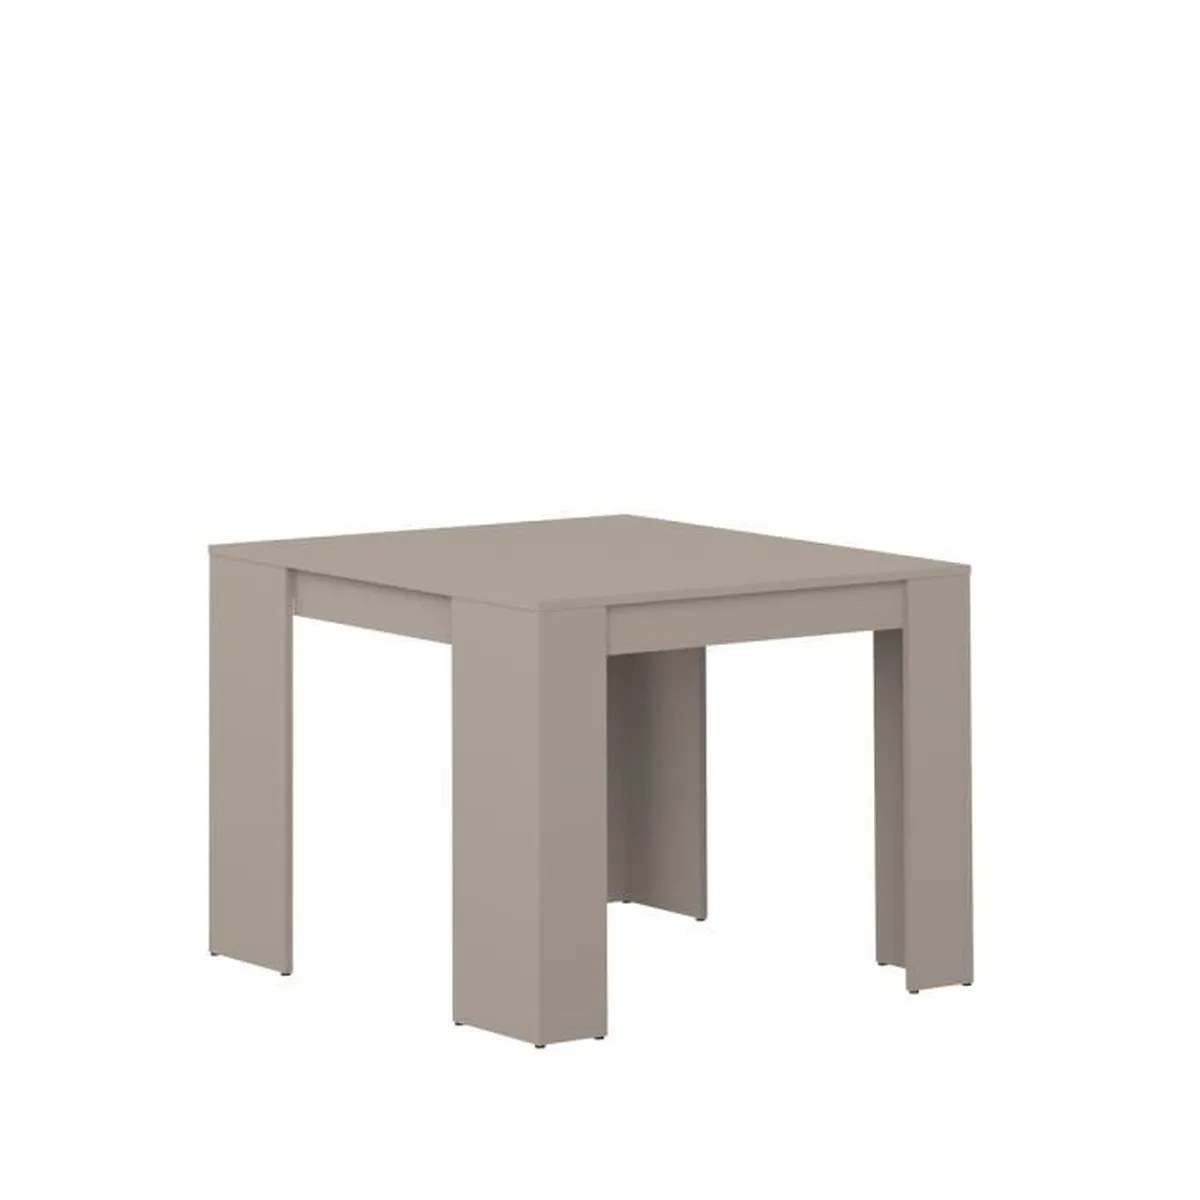 Table Retractable Console Mexx Table Console Extensible 198cm Coloris Taupe Achat